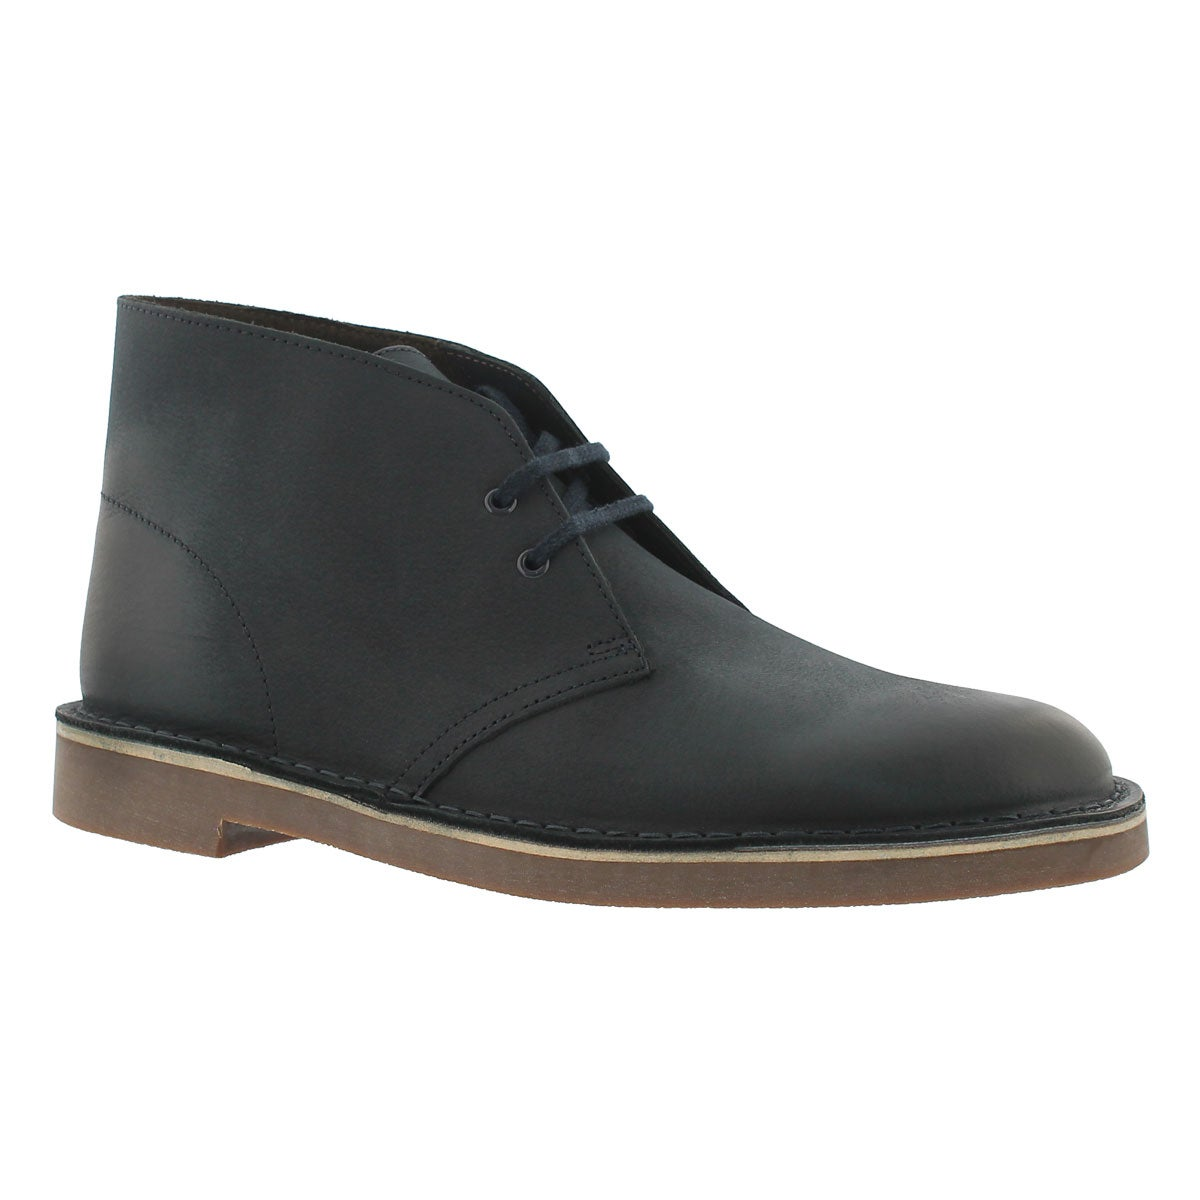 Mns Bushacre 2 navy leather chukka boot